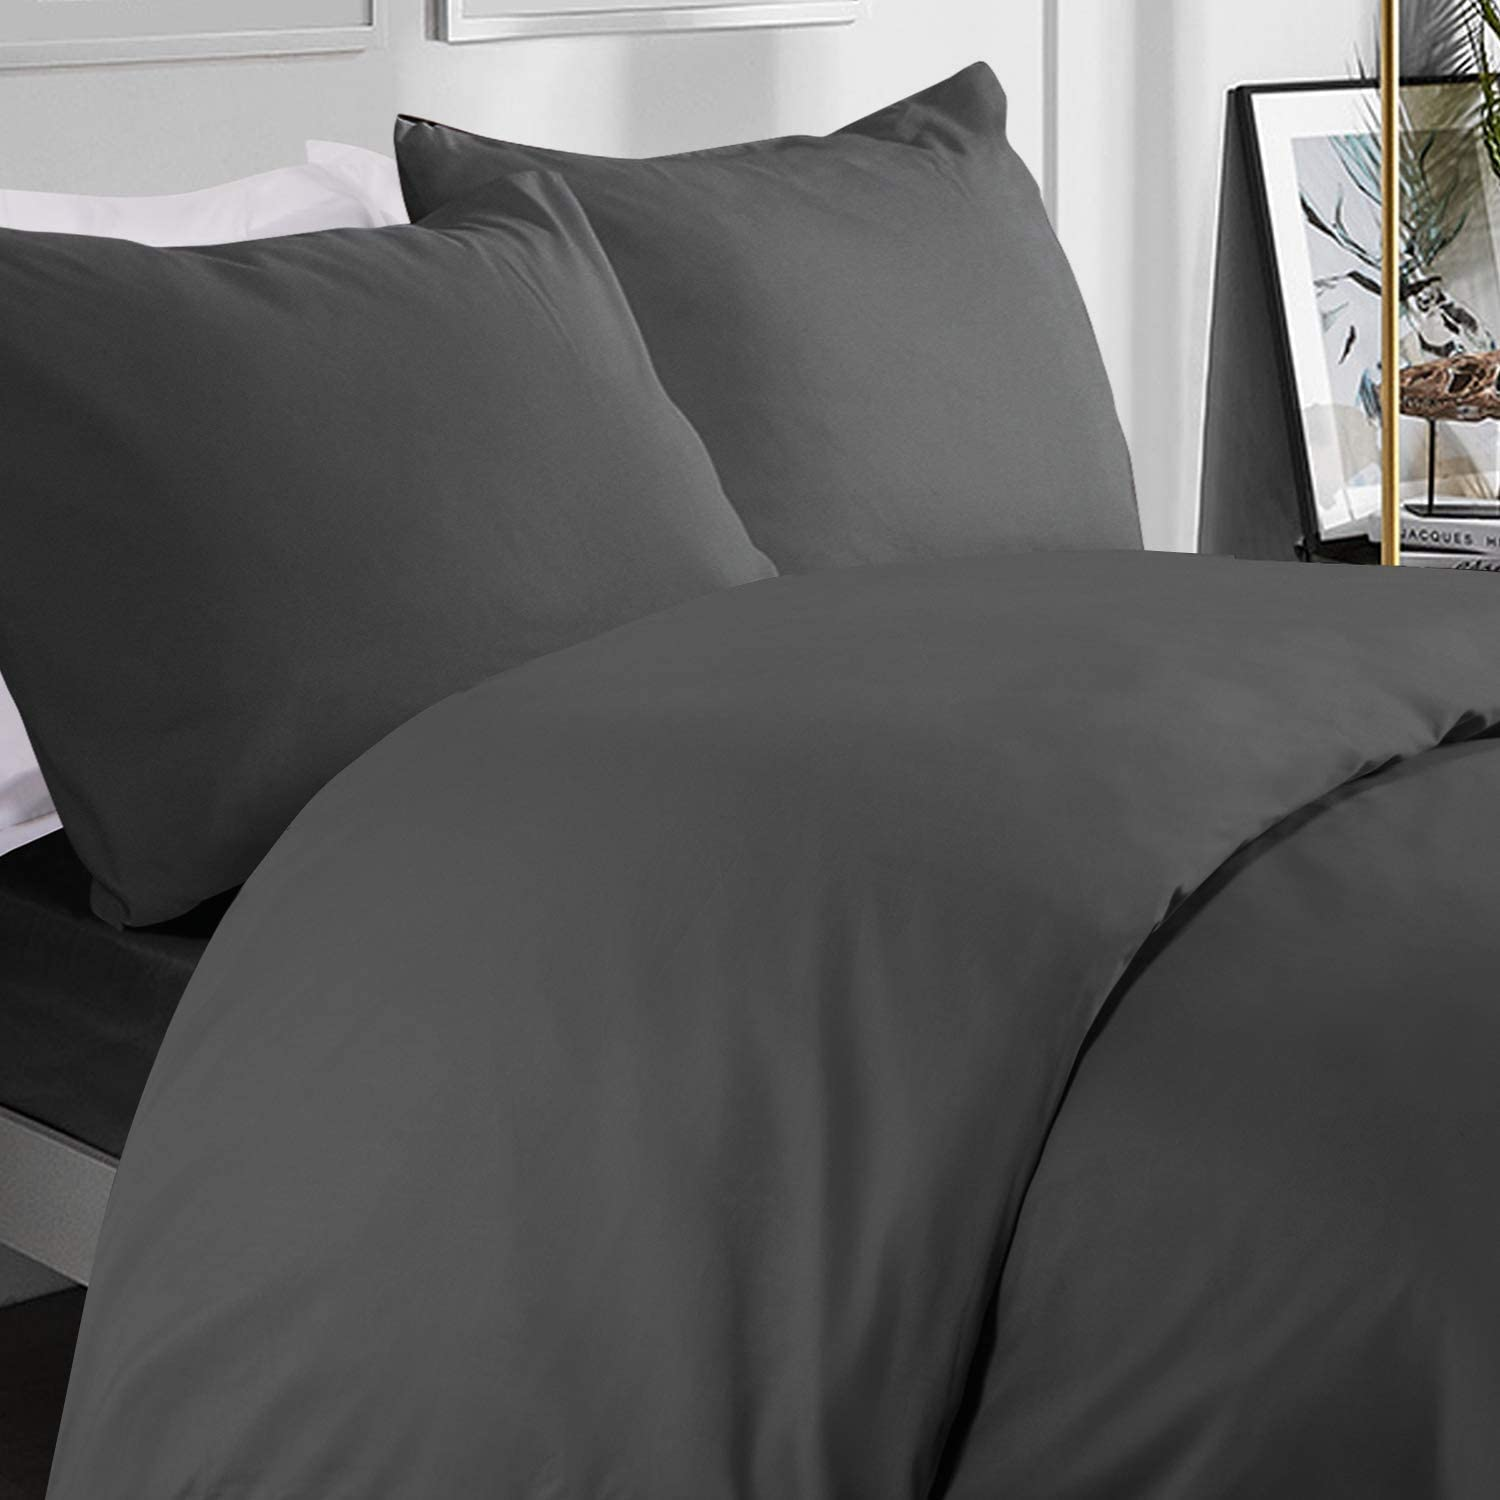 600 Thread Count Quilt Cover 100% Egyptian Cotton 3-PCs Duvet Cover Set with Button Closure - (Super King Size Grey Solid Color).